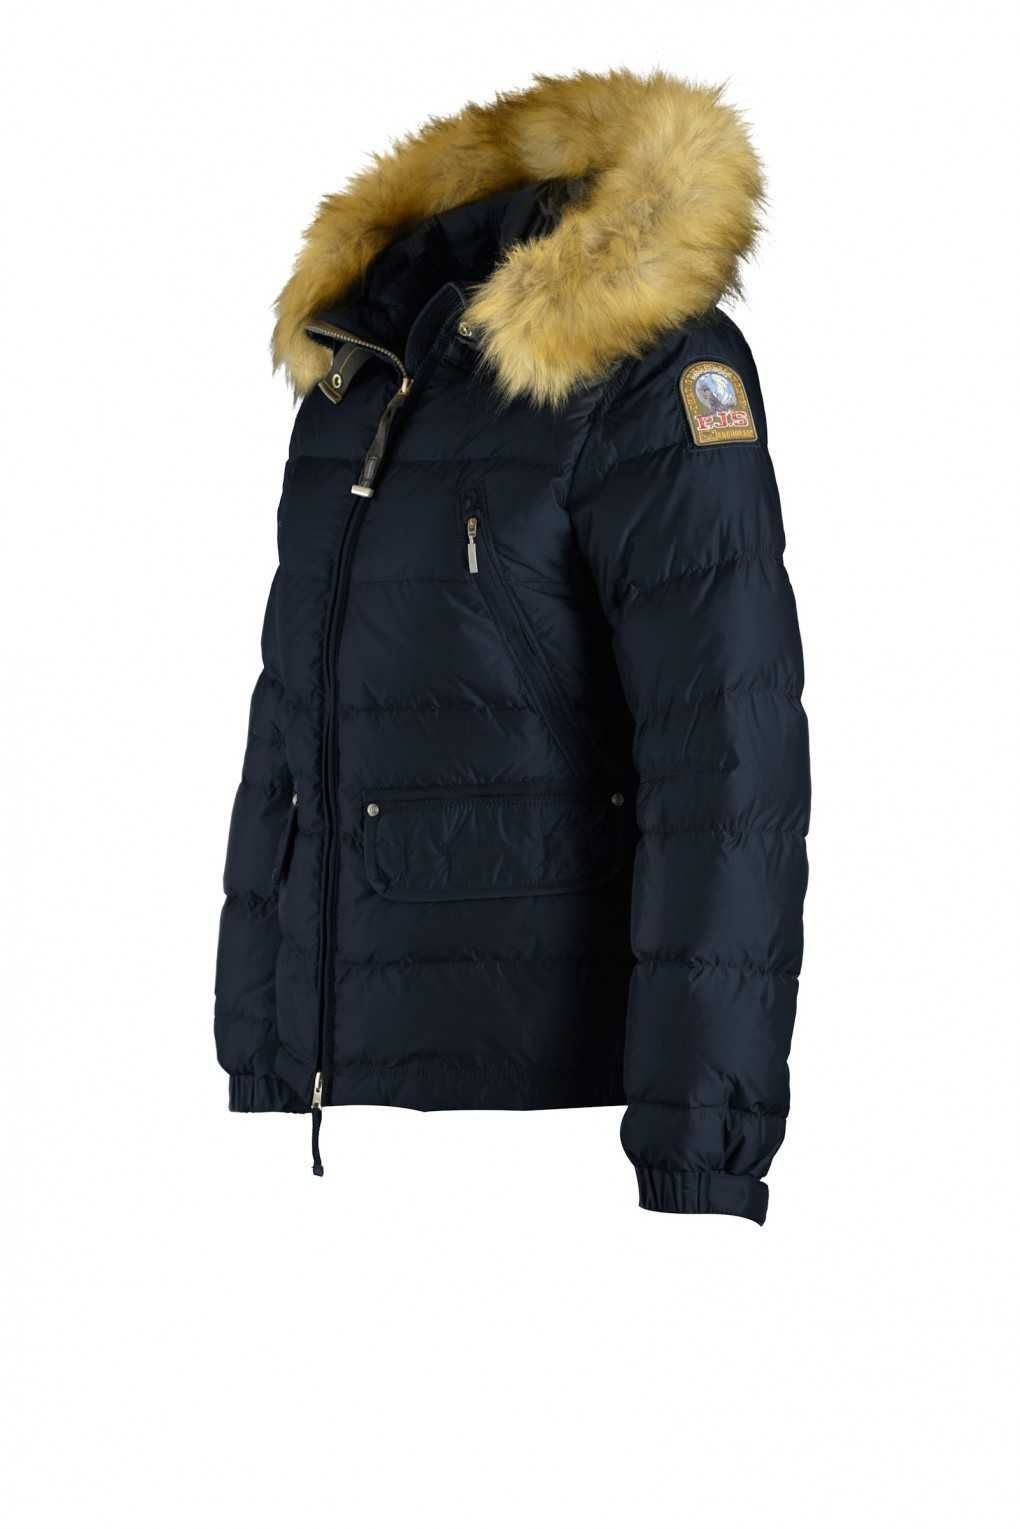 Parajumpers Jacket Parajumpers Women Winter,New Style all kinds of Parajumpers  Coats For Women,Parajumpers Sale Toronto,Parajumper Long Bear, really warm